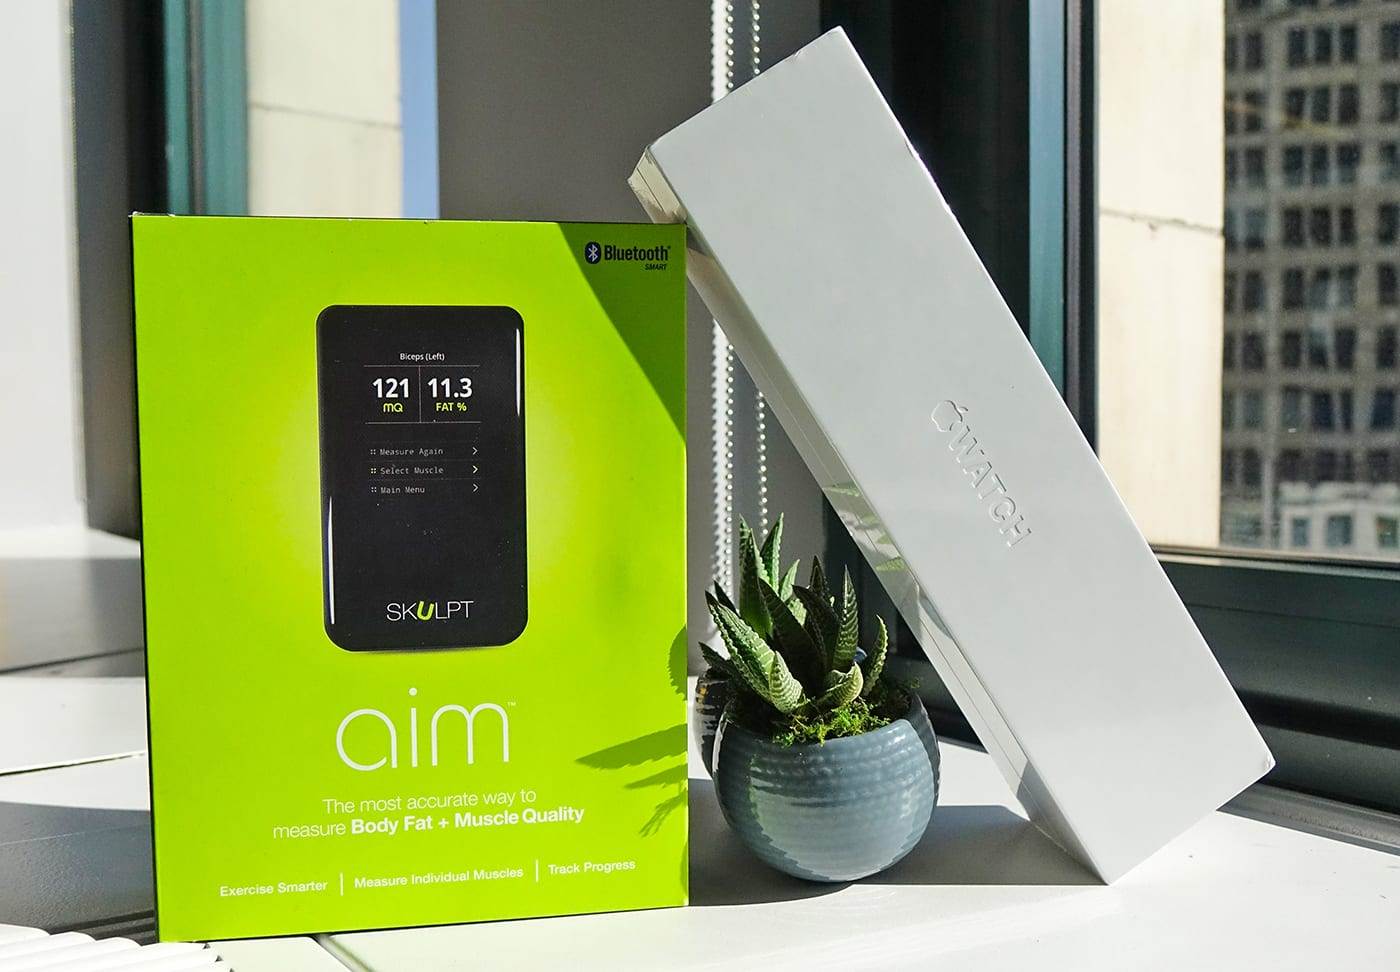 Engadget giveaway: Win an Apple Watch Sport and Aim fitness